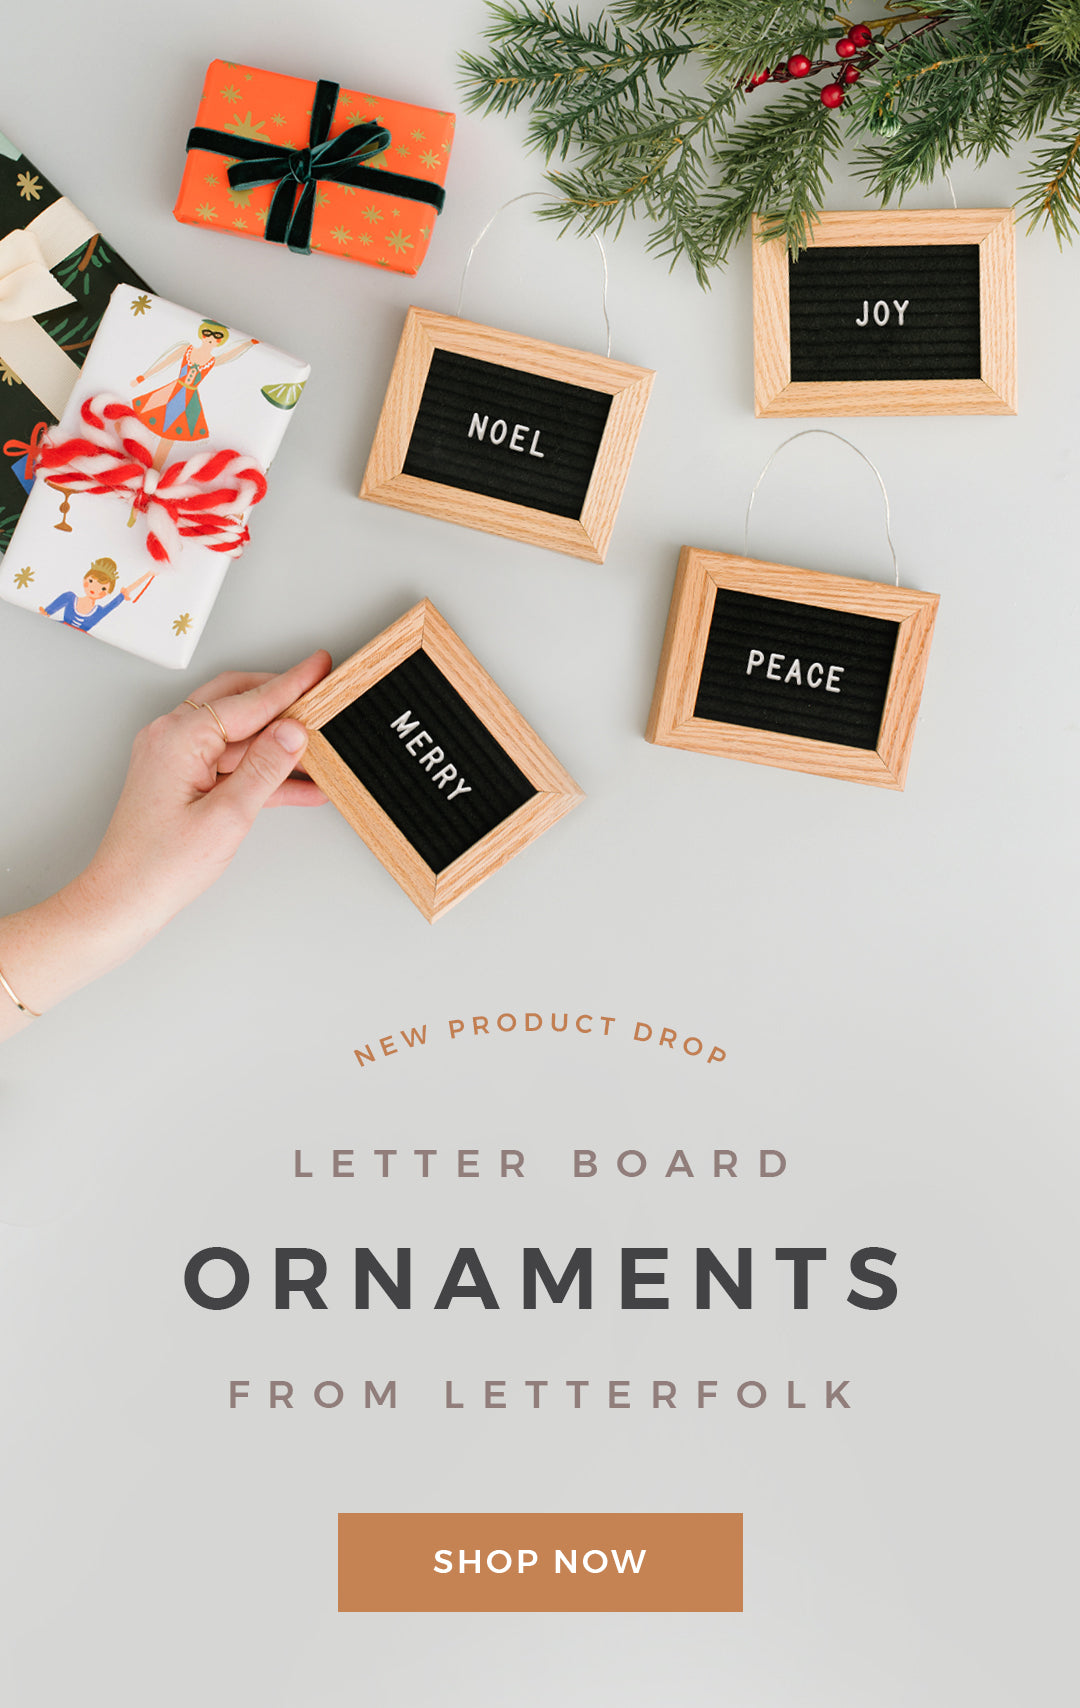 Letter Board Ornaments by Letterfolk